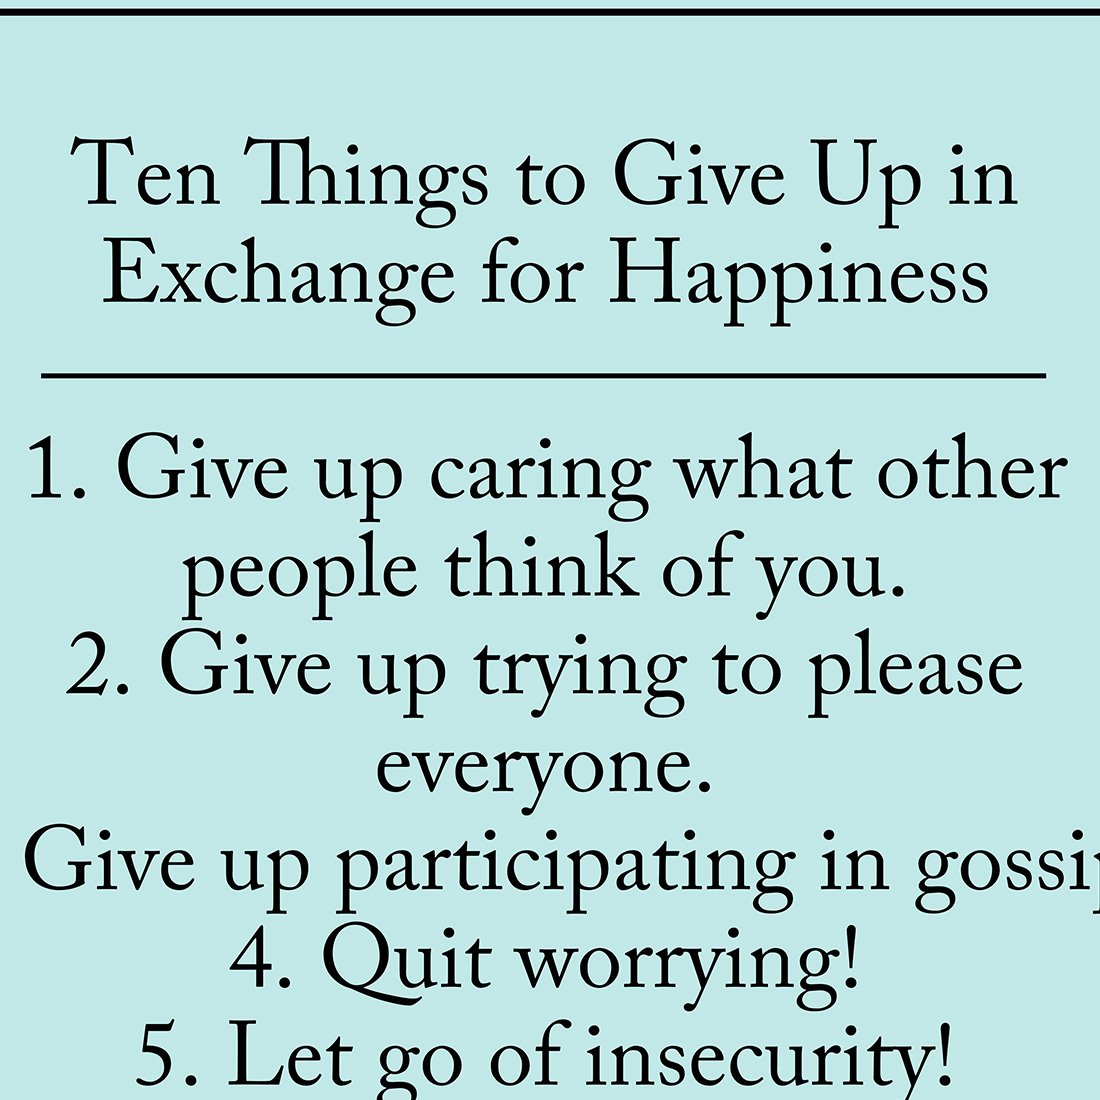 How To Give Up On Happiness